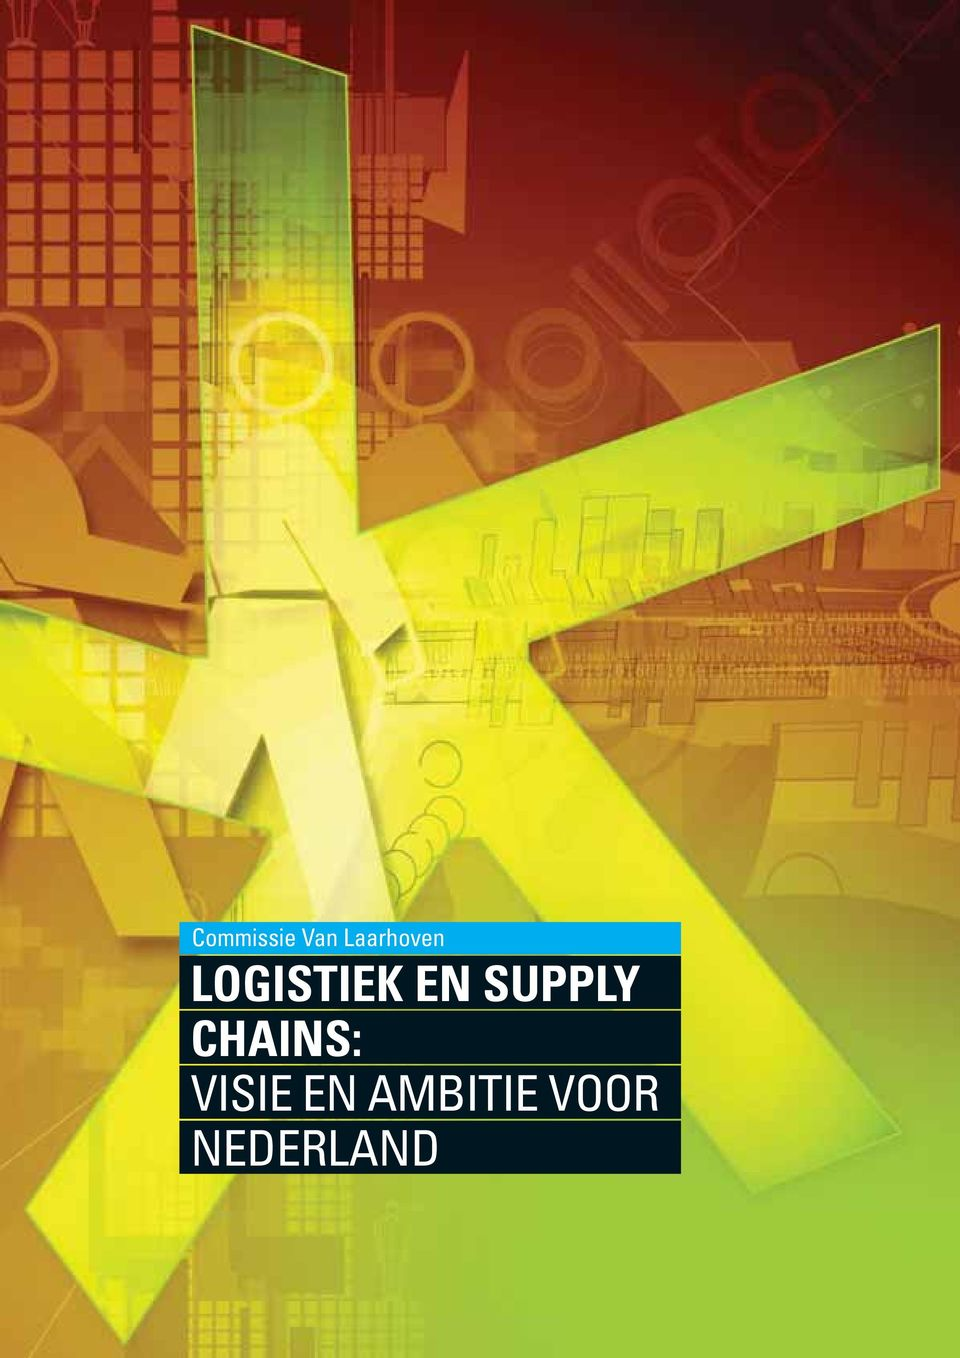 EN SUPPLY CHAINS: